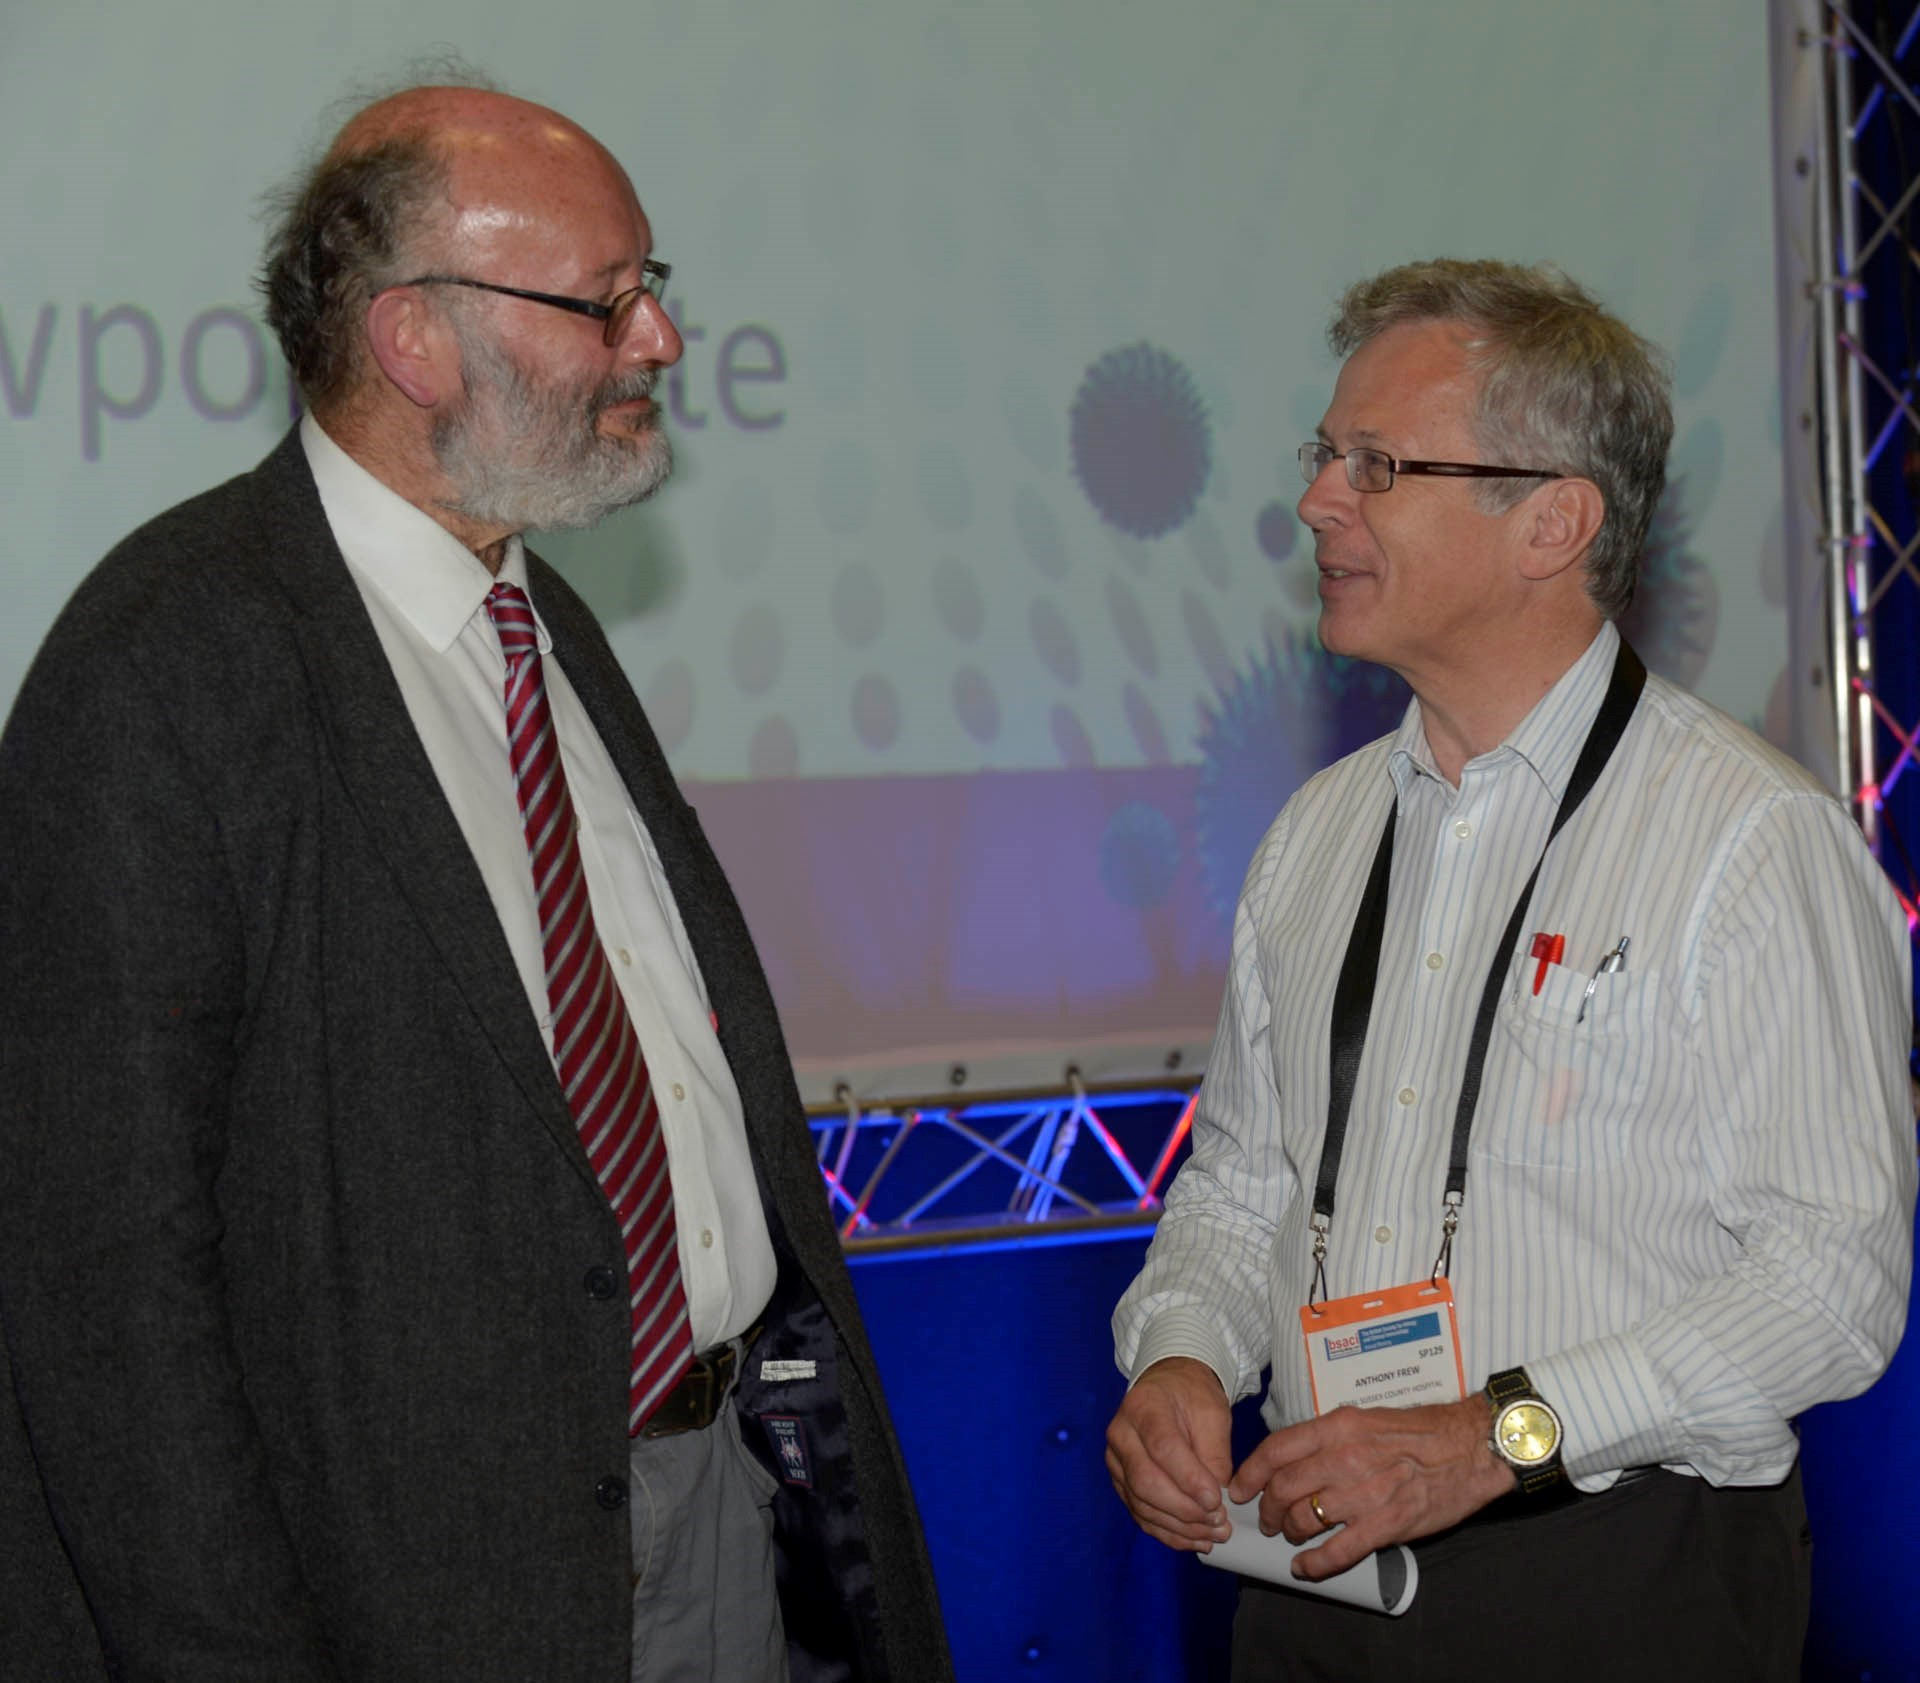 With Chris at 2013 Meeting